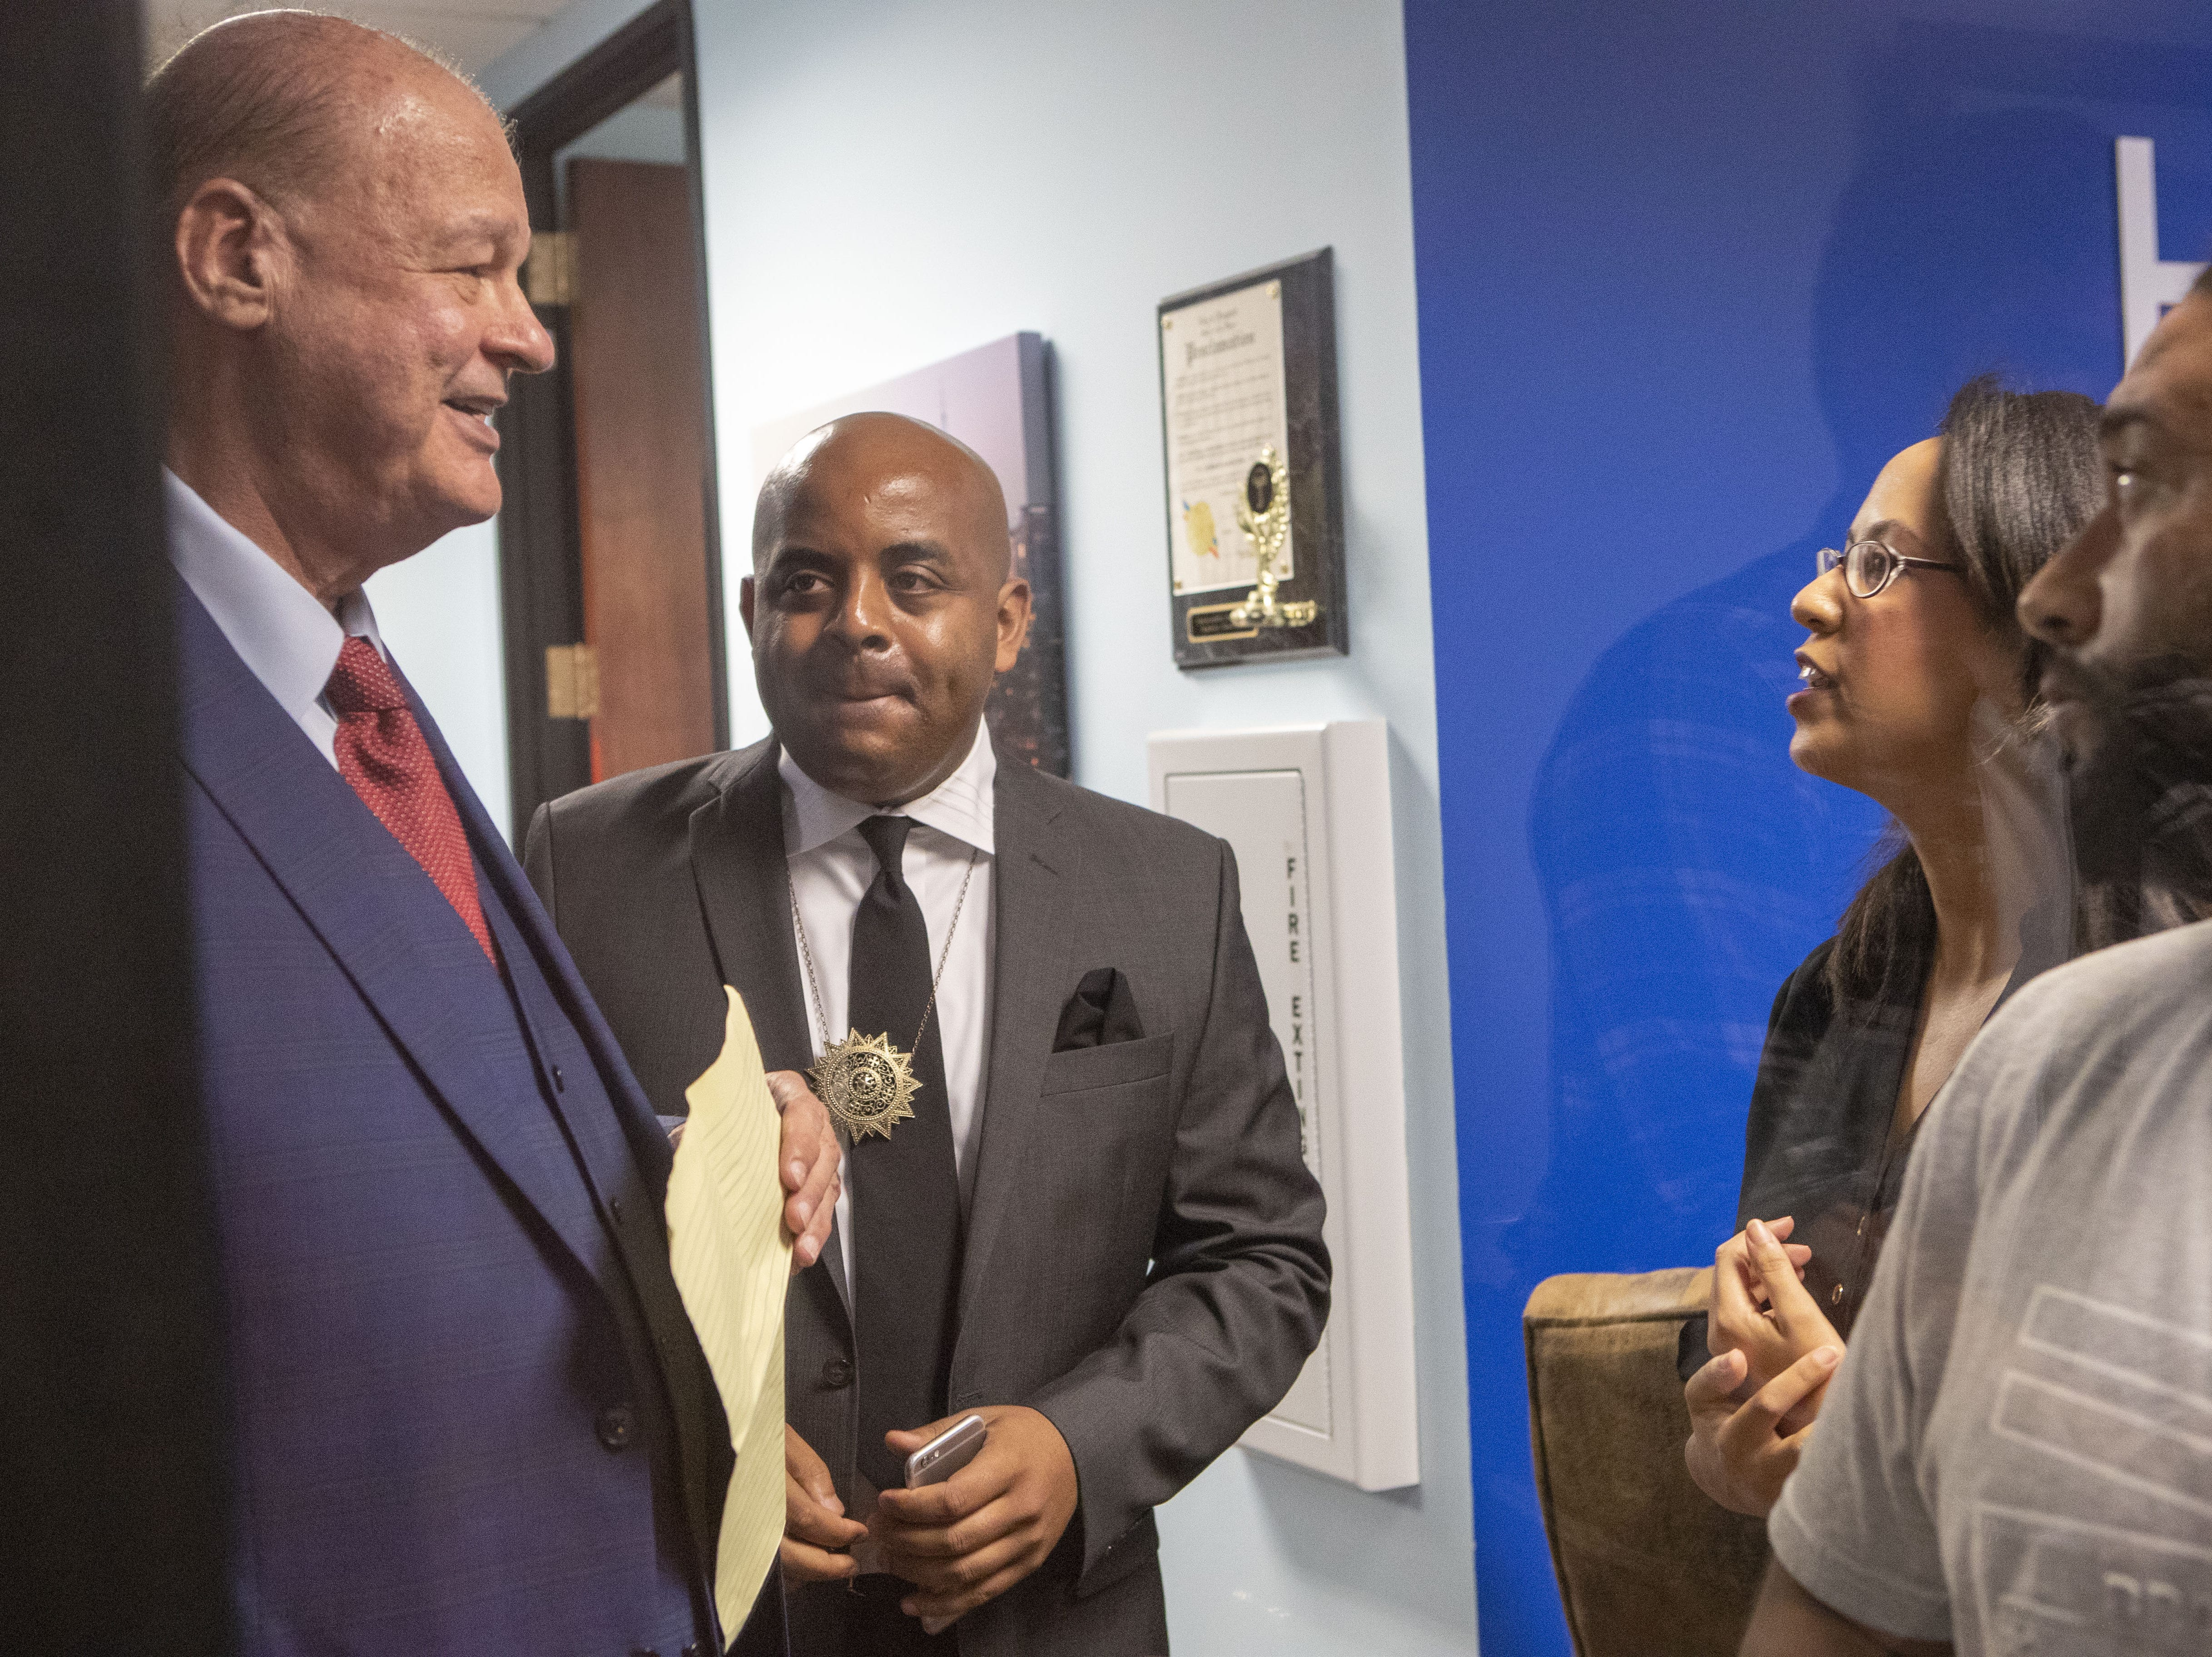 Former AG Tom Horne (left) and Jarrett Maupin at a press conference for Horne's client Edward Brown, who is paralyzed from the chest down since being shot by a Phoenix police officer in August.